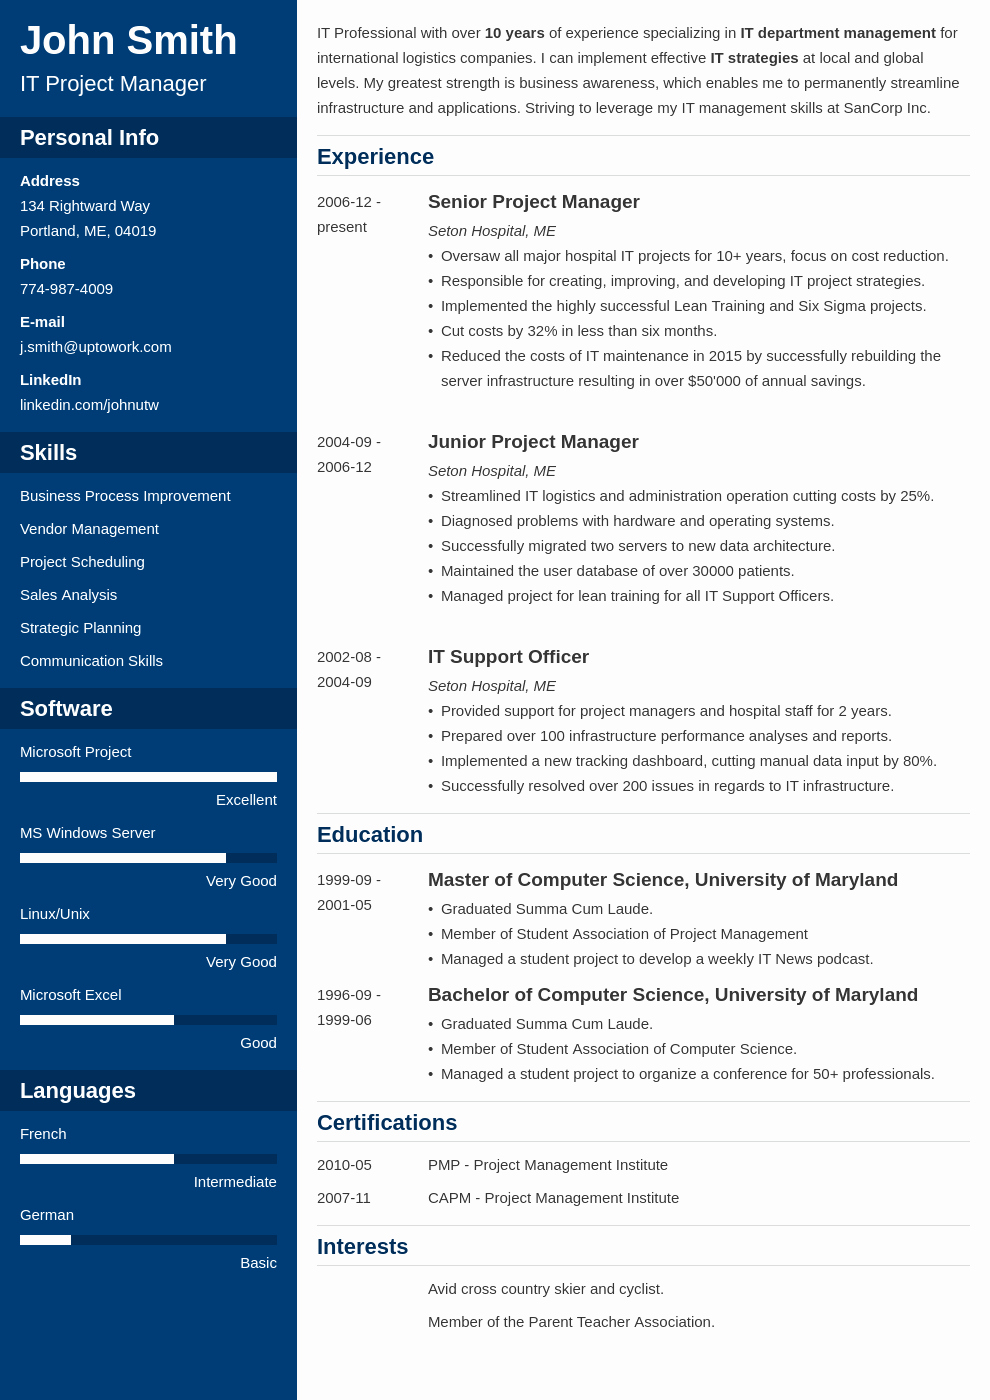 Professional Resume Template Free Beautiful 20 Resume Templates [download] Create Your Resume In 5